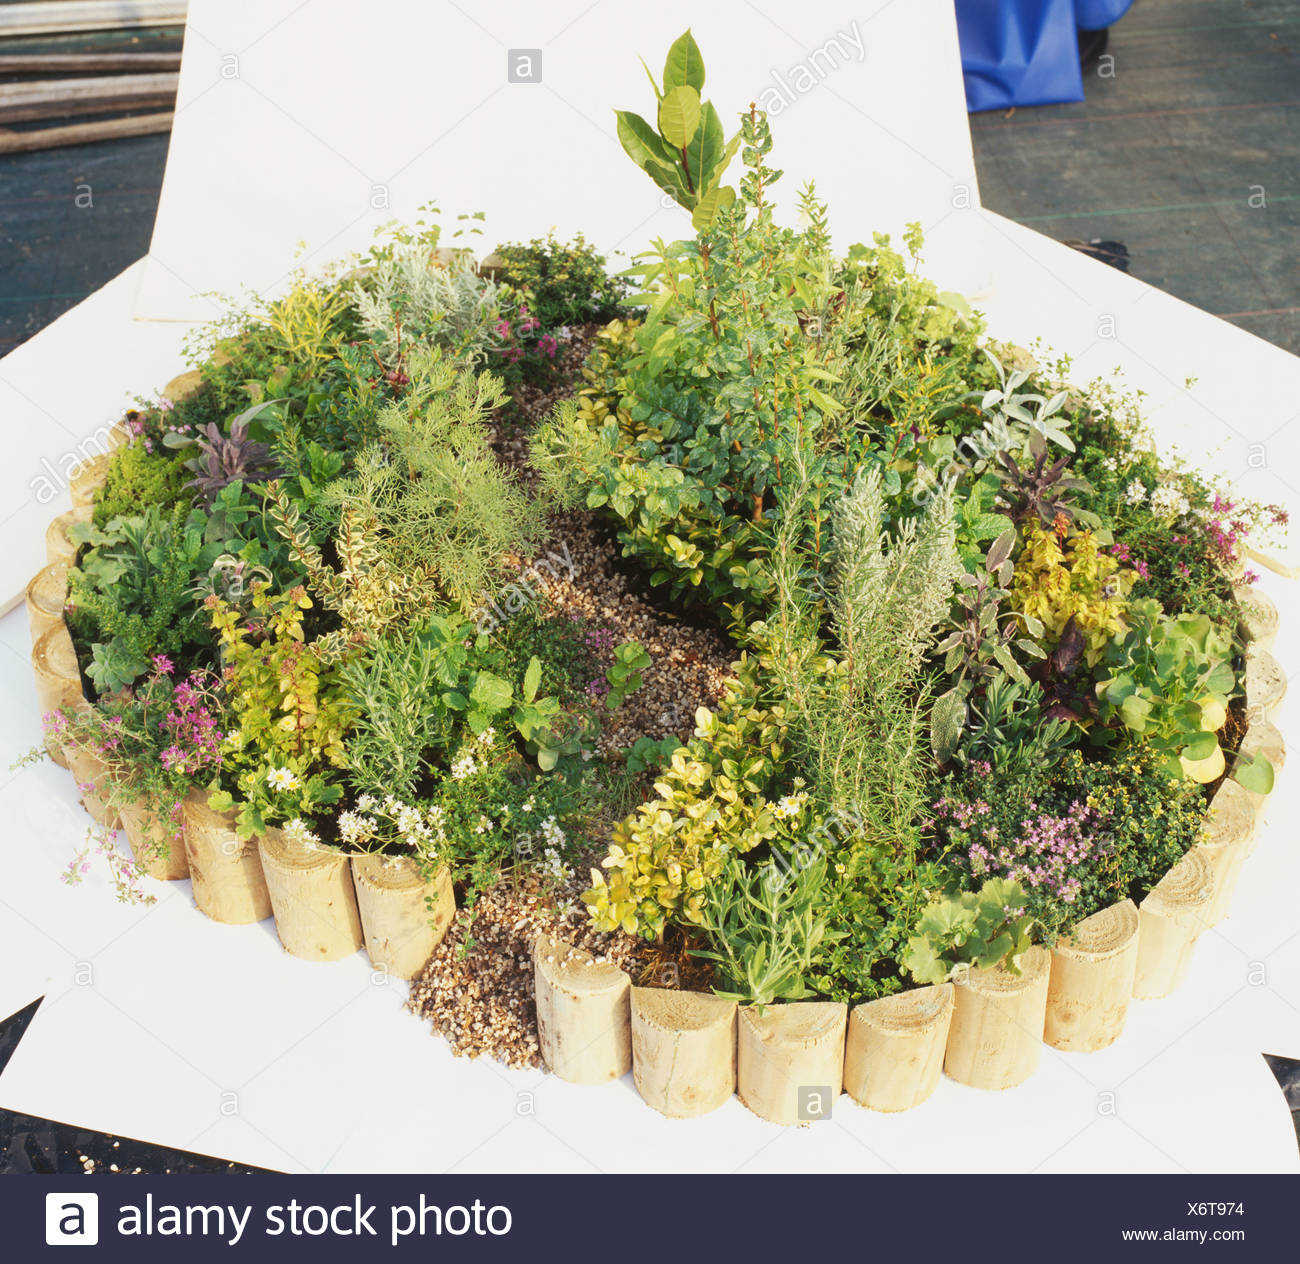 Oval herb garden with s shaped path edged with golden box - Stock Image